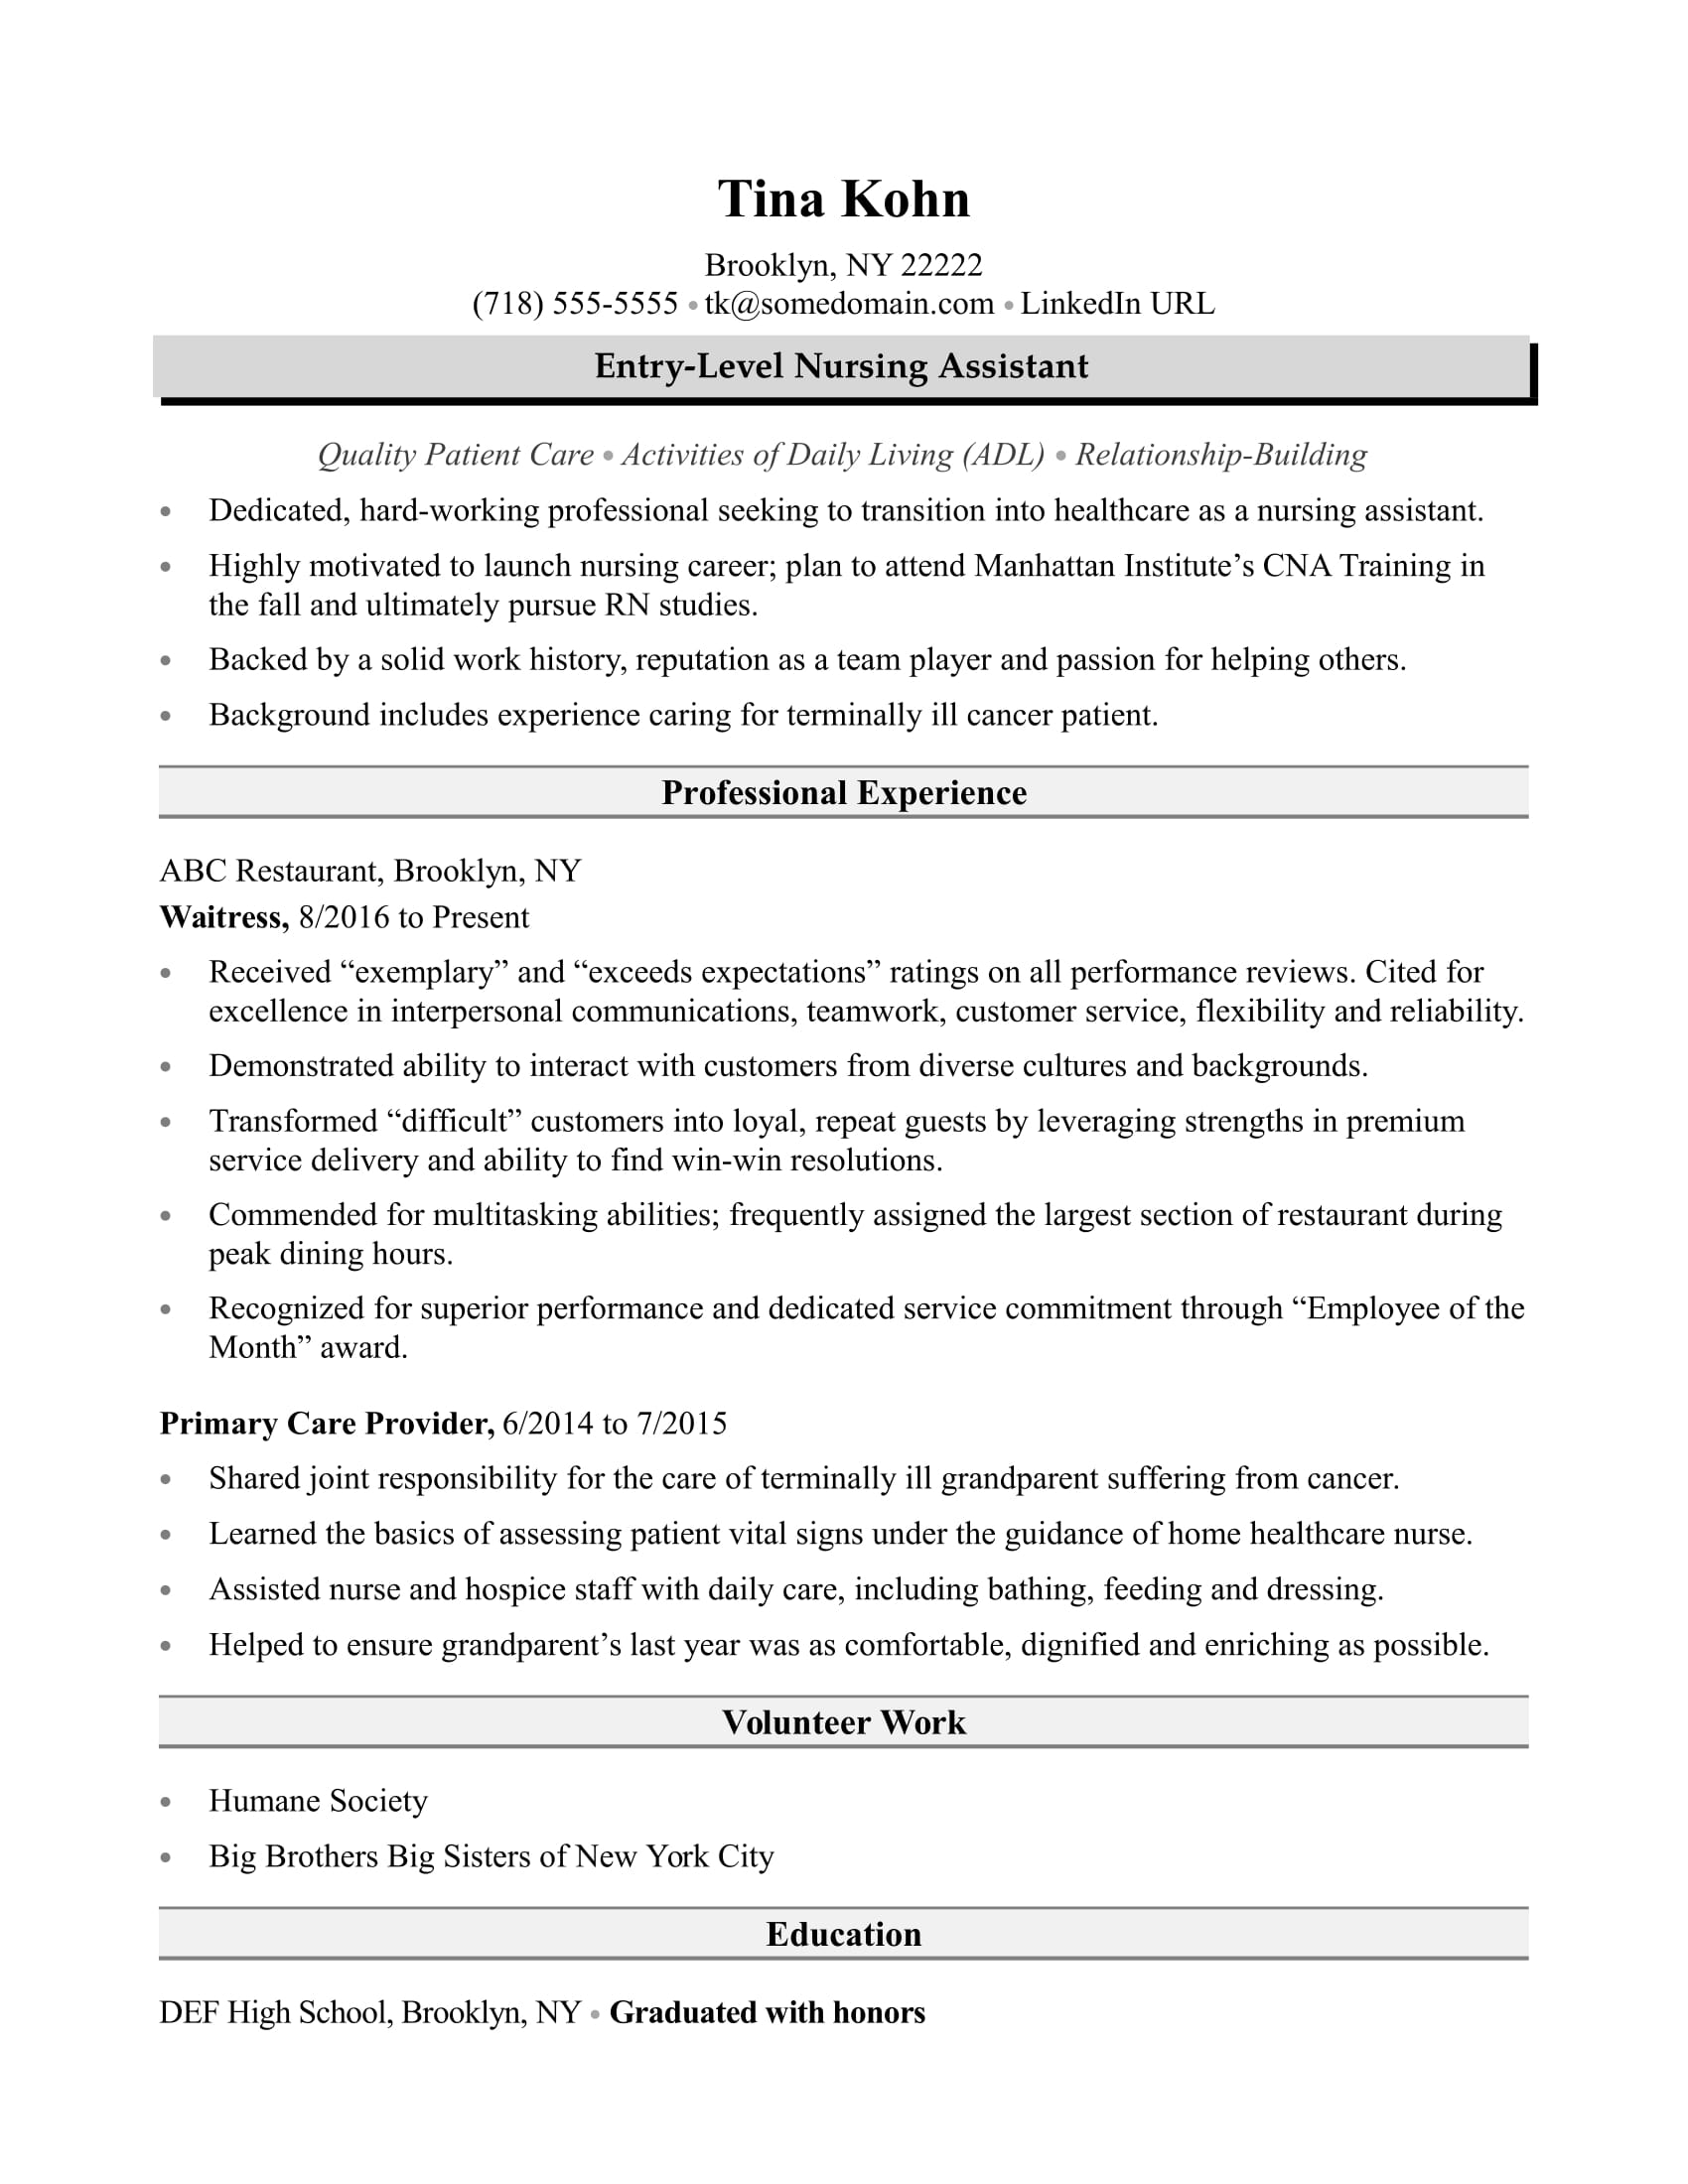 nursing assistant resume sample monster certified example friend perfect cna airline Resume Certified Nursing Assistant Resume Example